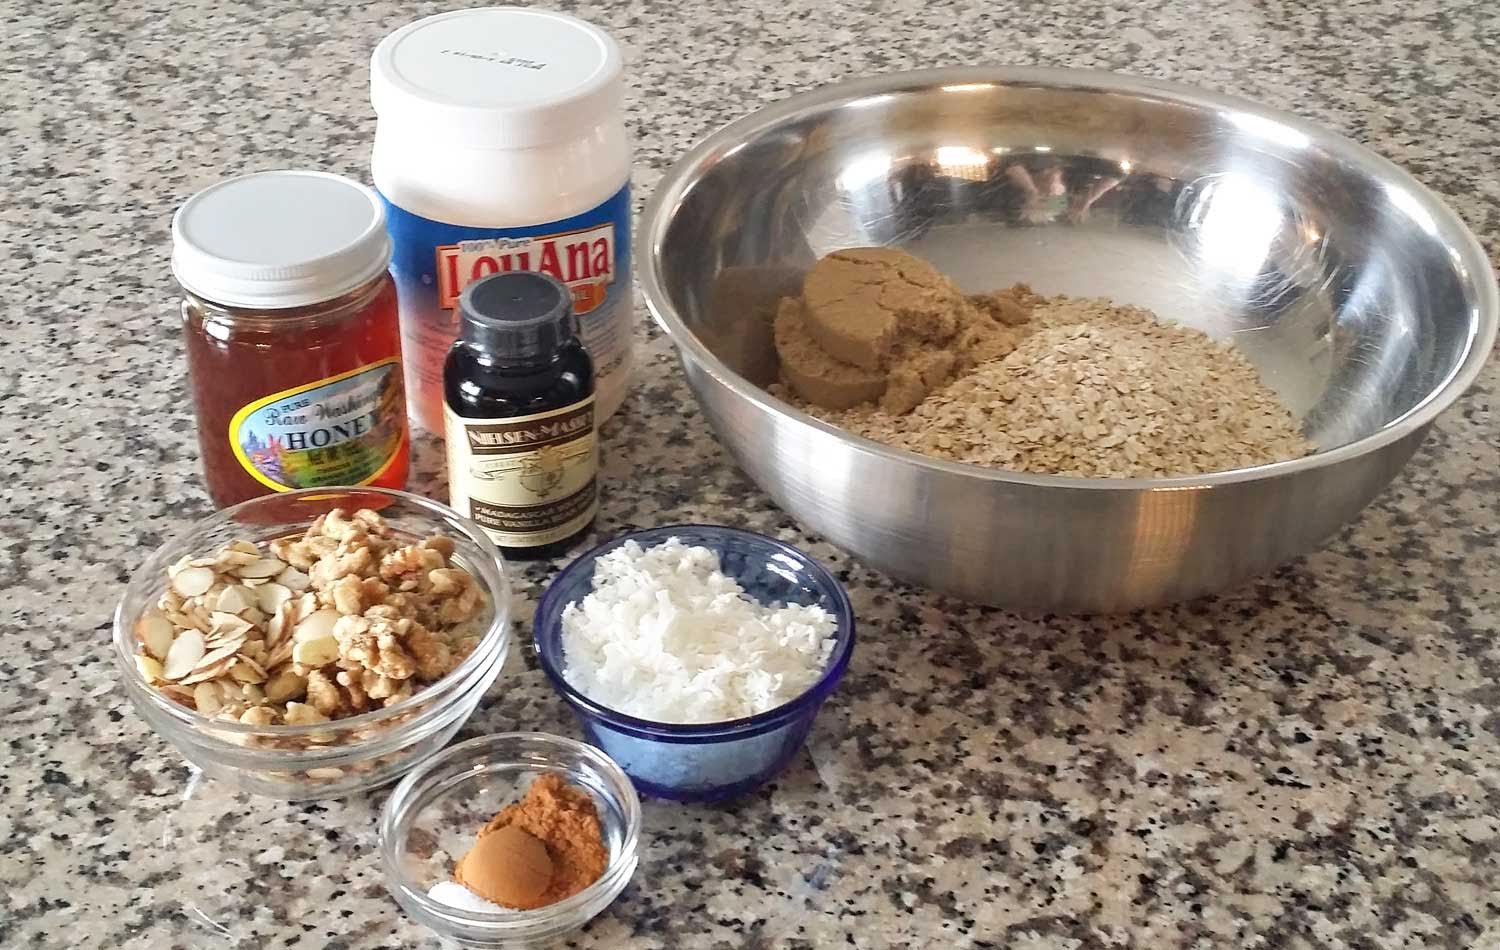 Assemble your ingredients for the vanilla almond granola: Oats, almonds, walnuts, shredded coconut, brown sugar, salt, cinnamon, coconut oil, honey and vanilla bean paste.